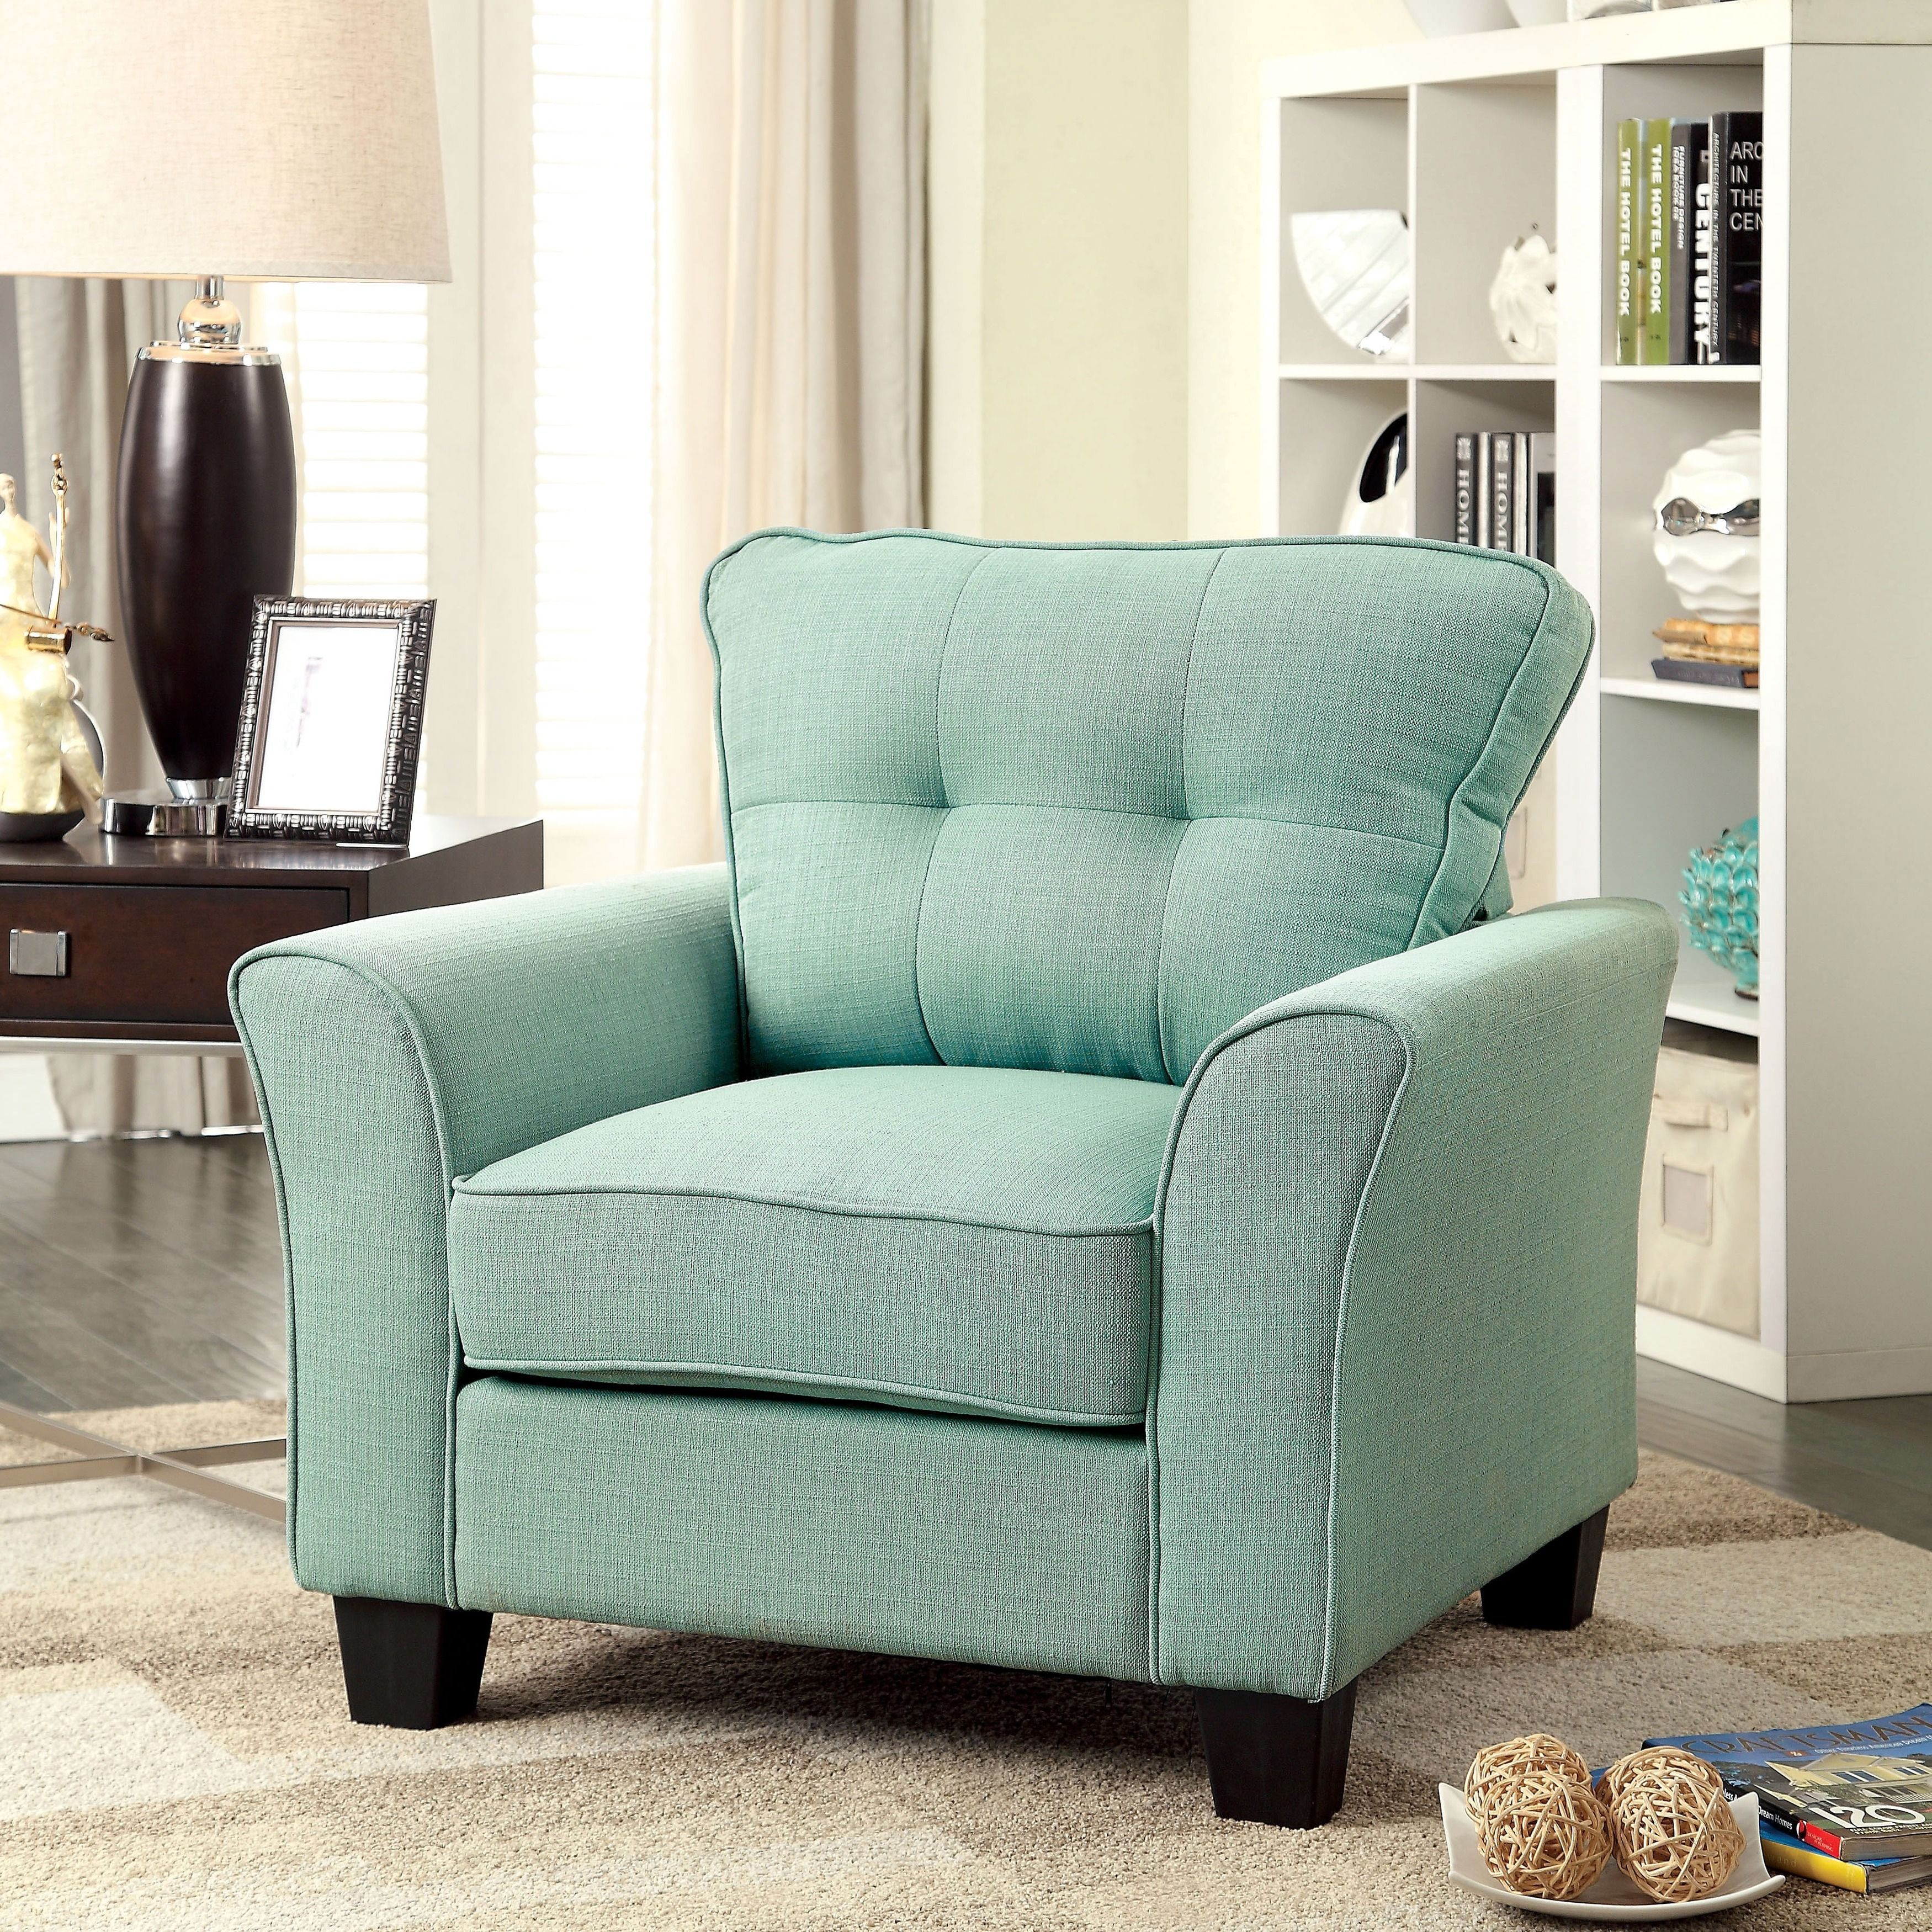 Furniture Of America Primavera Modern Linen Chair   Overstock™ Shopping    Great Deals On Furniture Of America Living Room Chairs